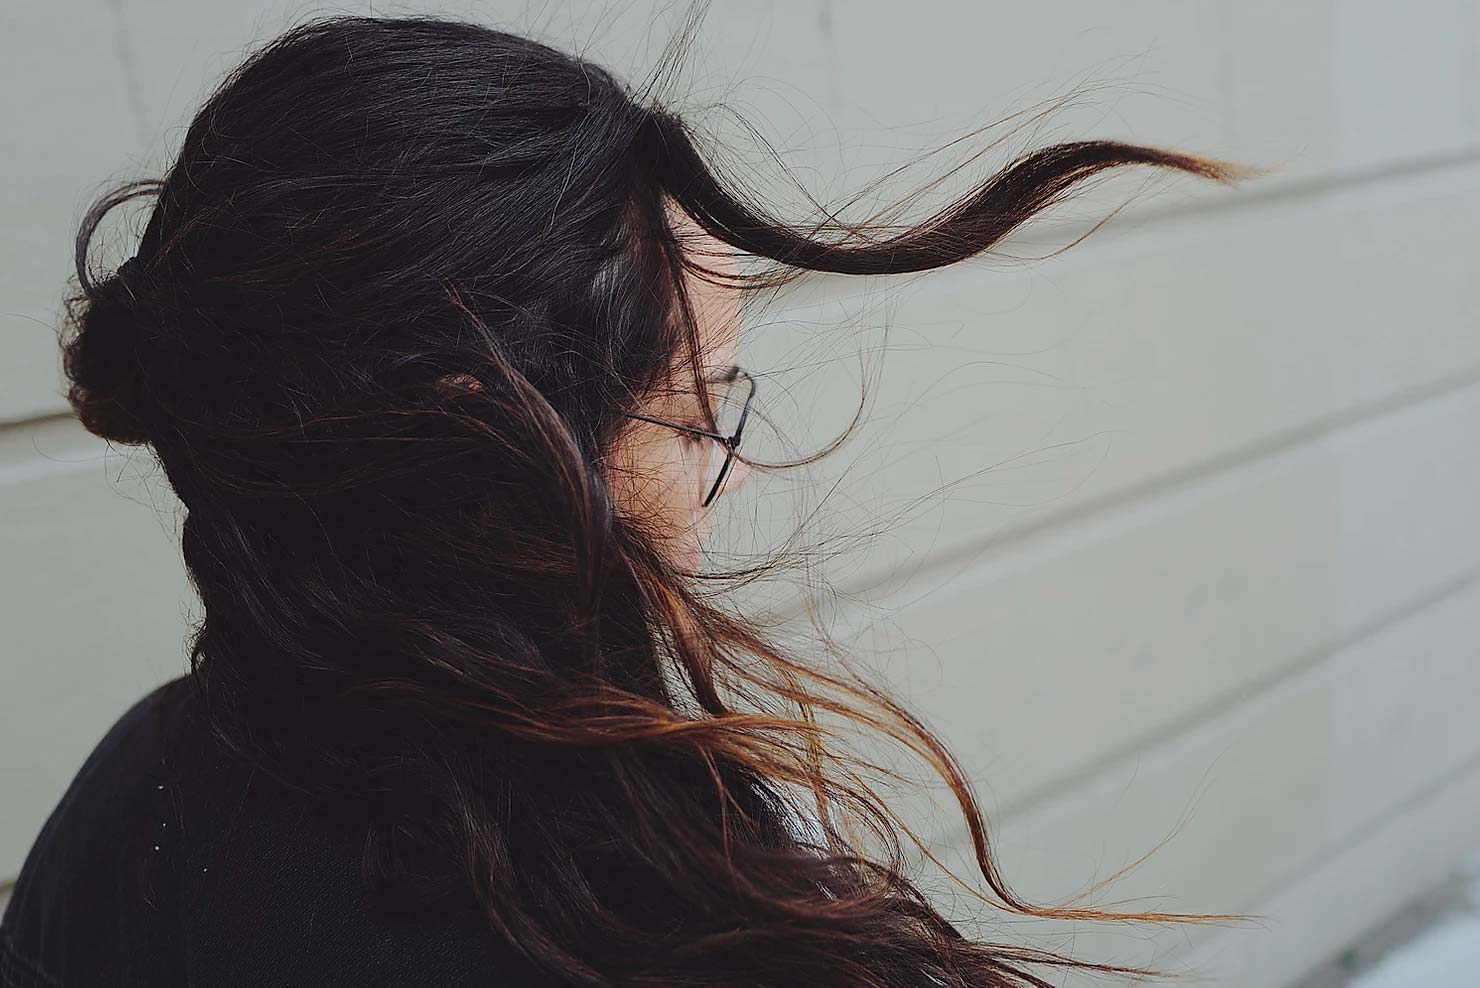 Woman wearing glasses with dark hair that is blowing in the wind.